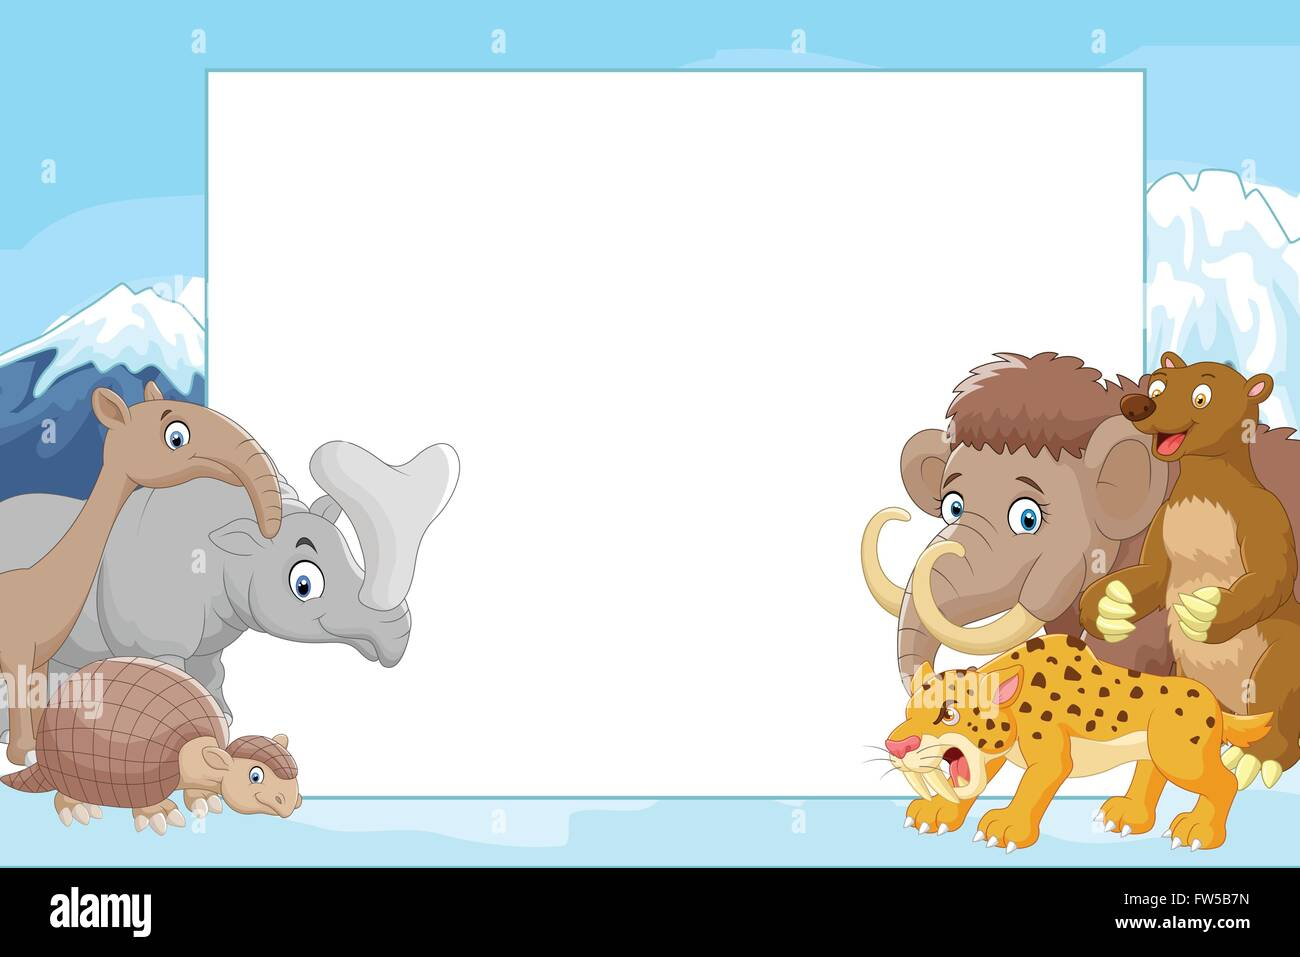 Ice Age Animals Stock Photos & Ice Age Animals Stock Images - Alamy